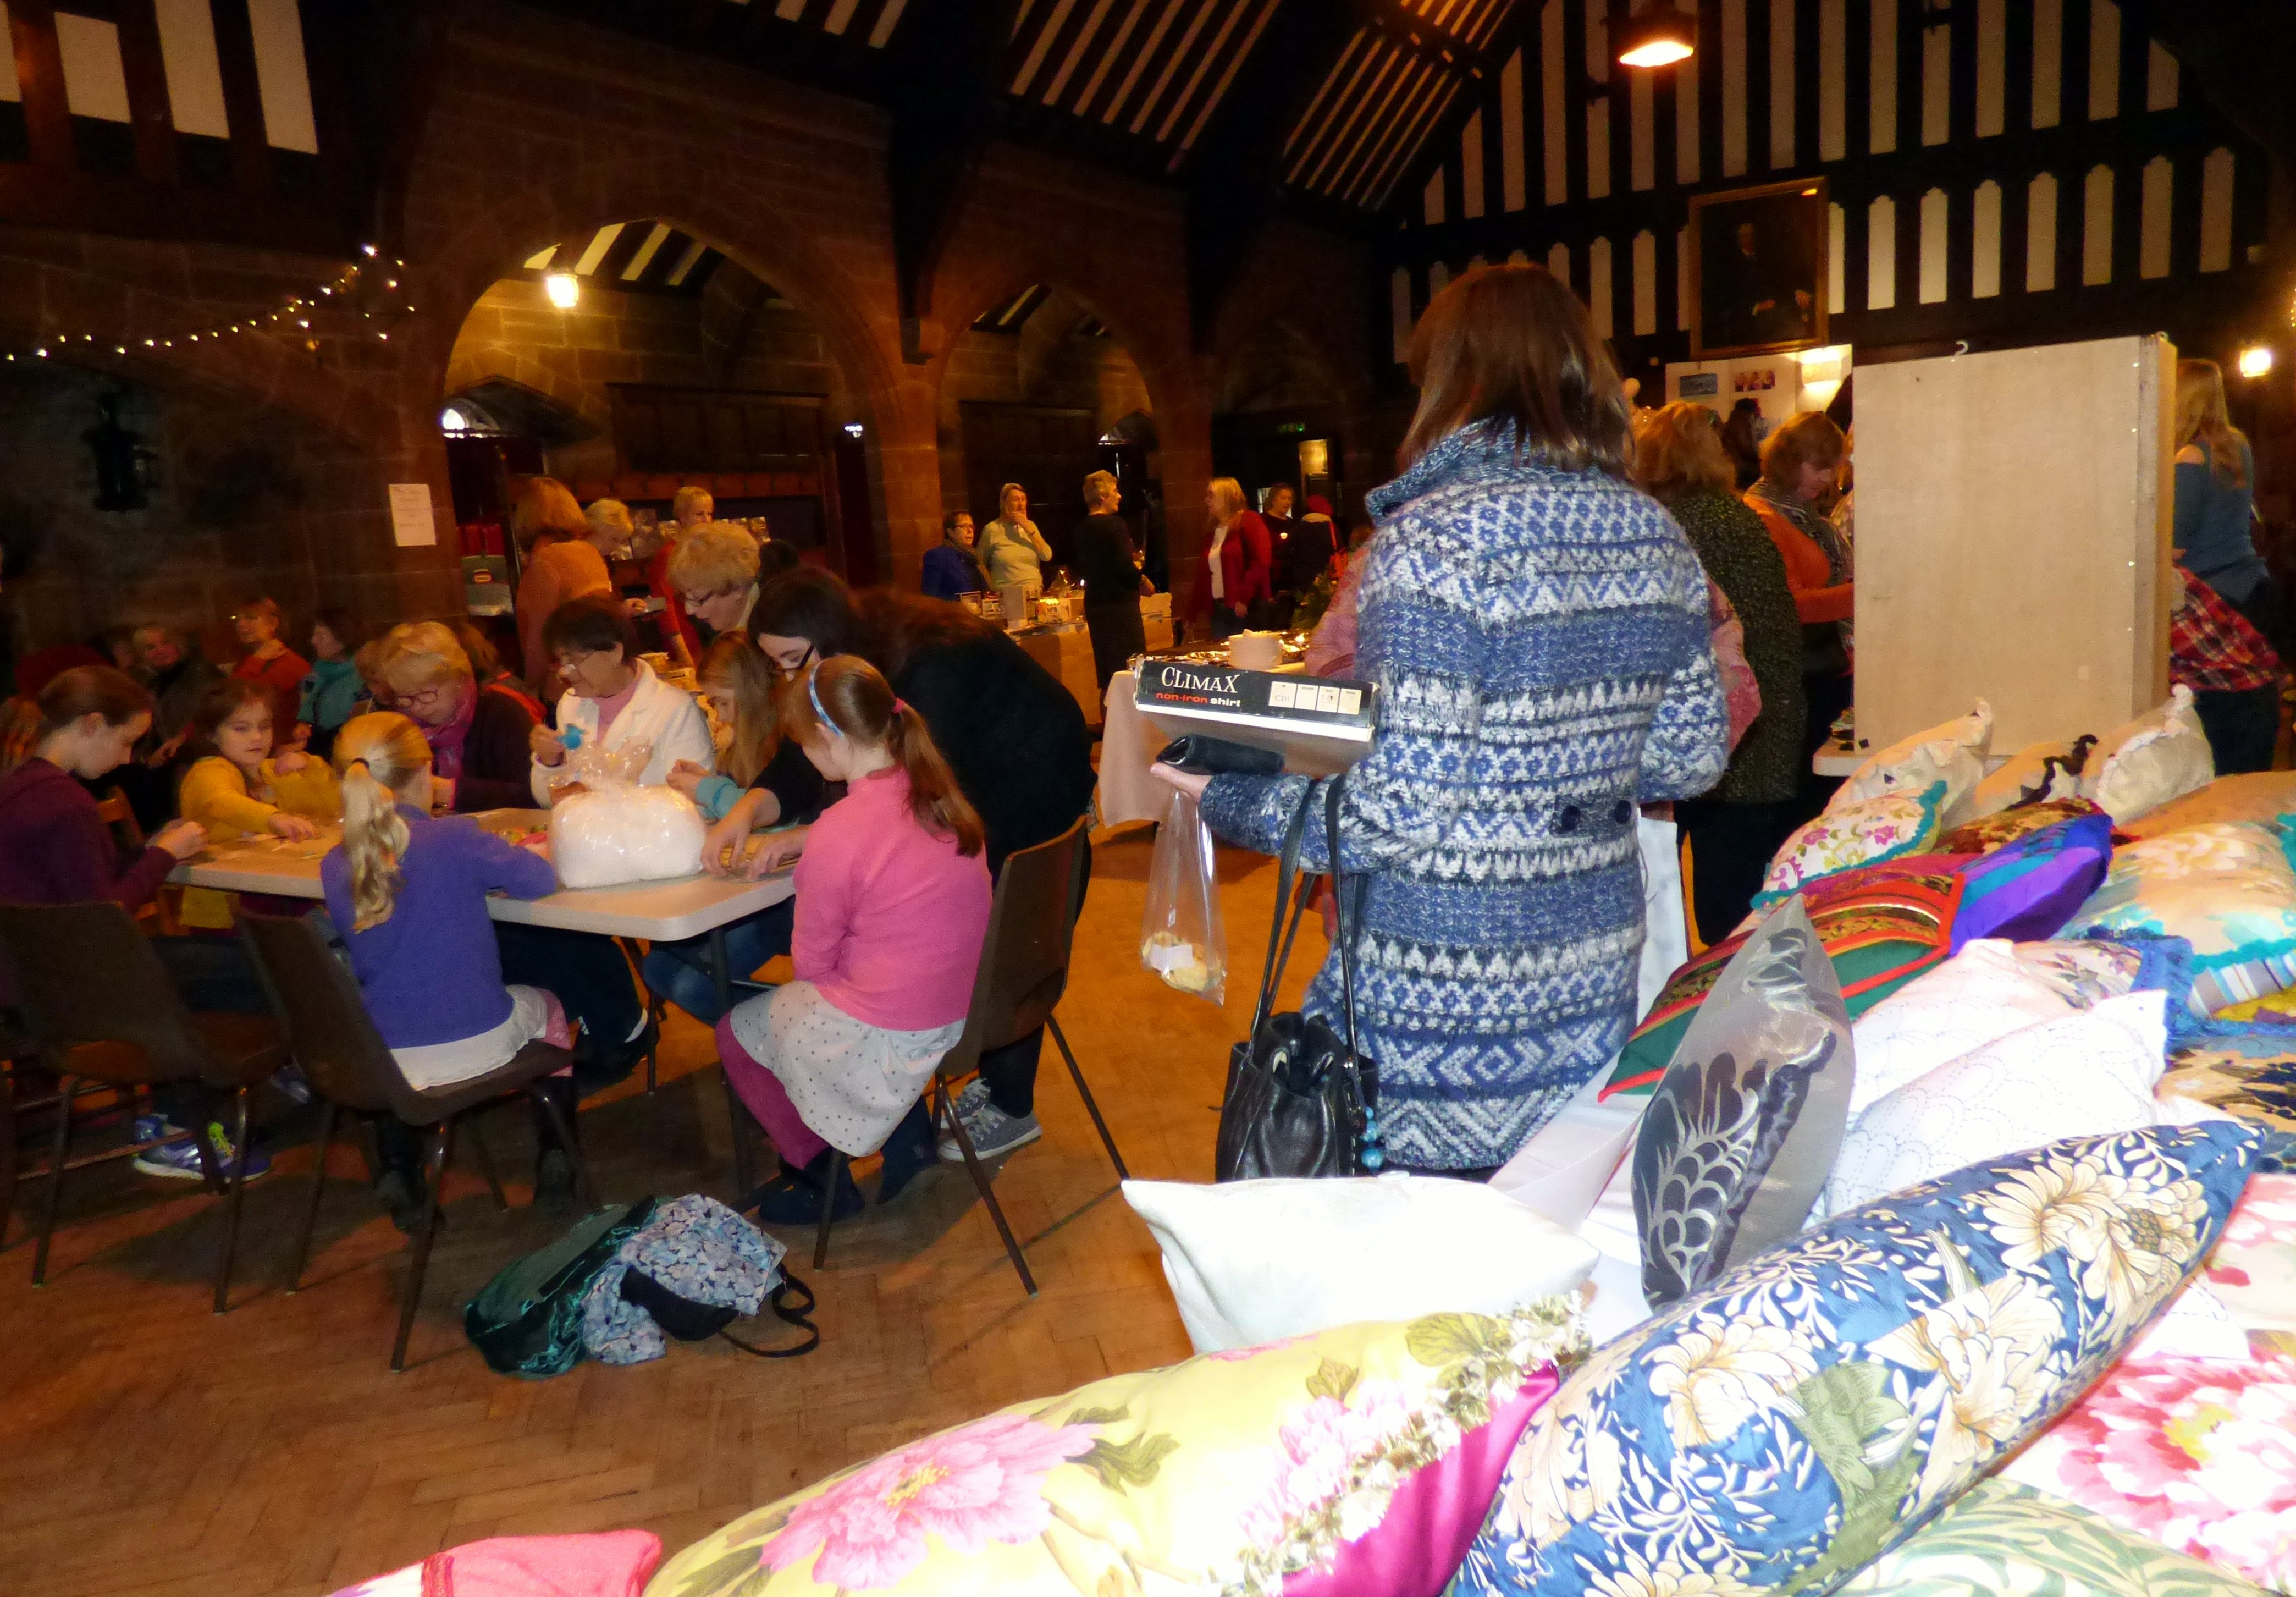 MEG winter Fair 2016 with our fundraising cushion stall in the foreground